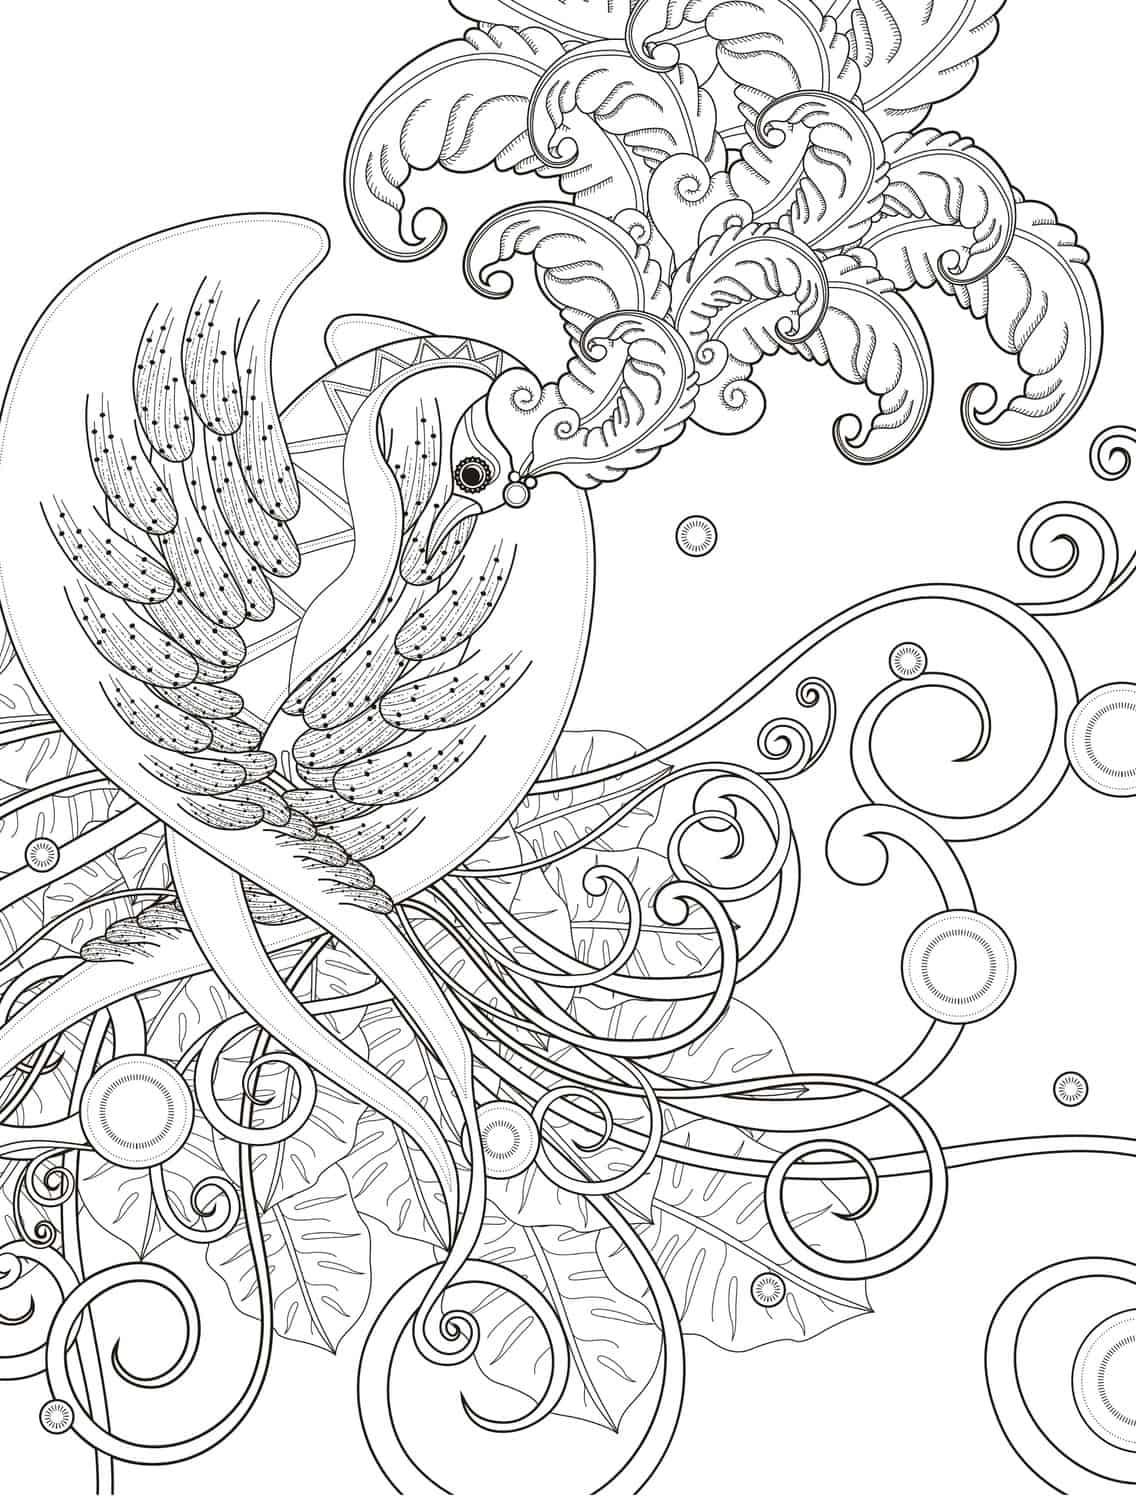 4400 Free Printable Hummingbird Coloring Pages For Adults Pictures